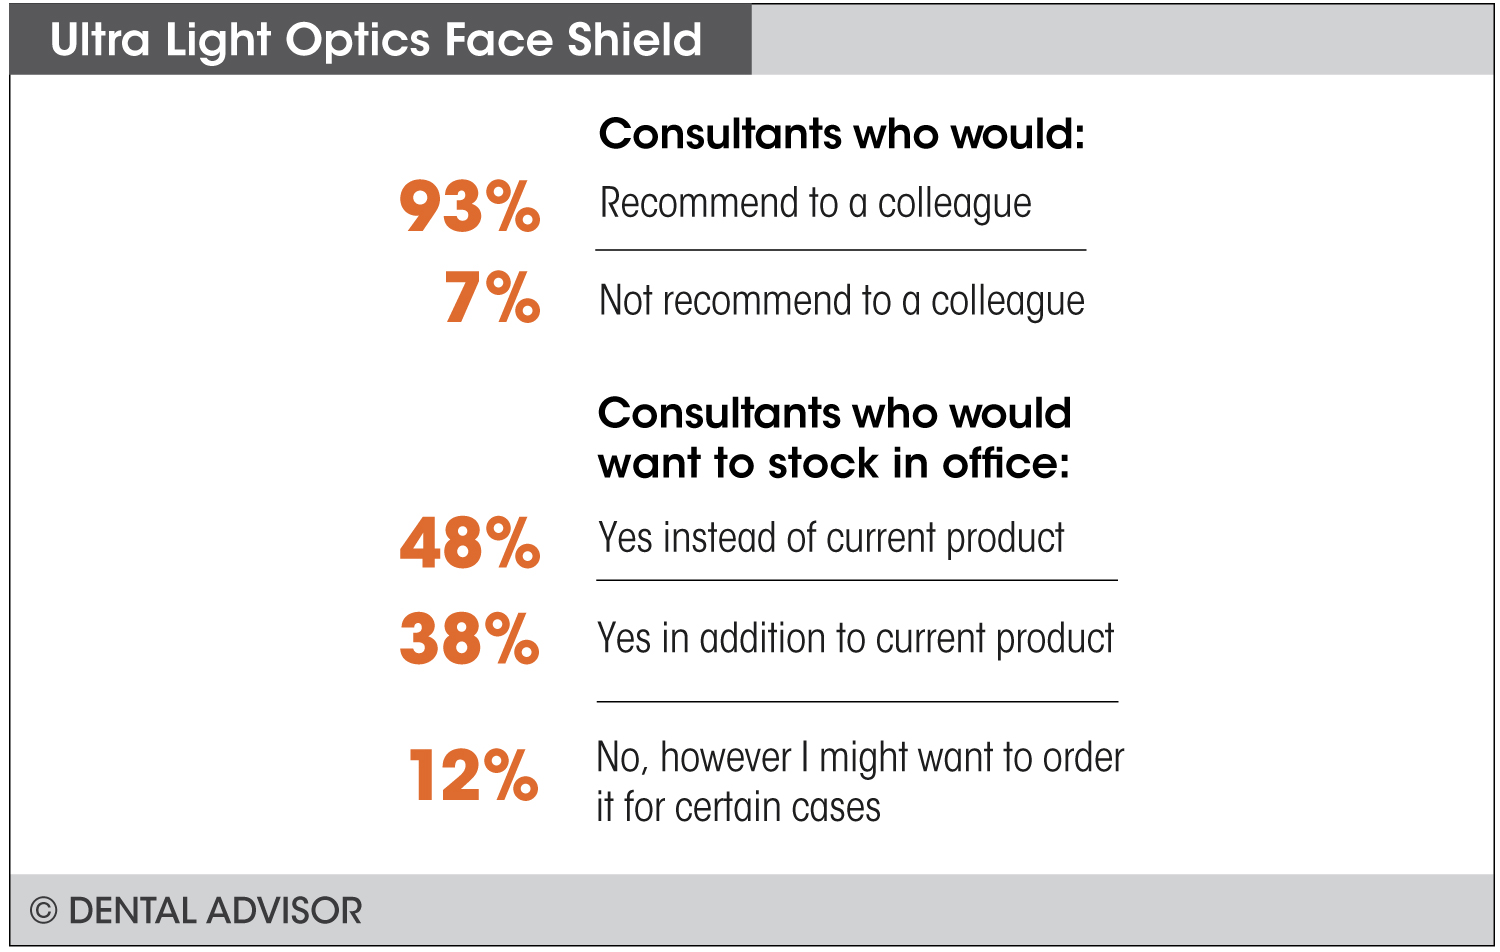 Ultralight_Face_Shield+recommend